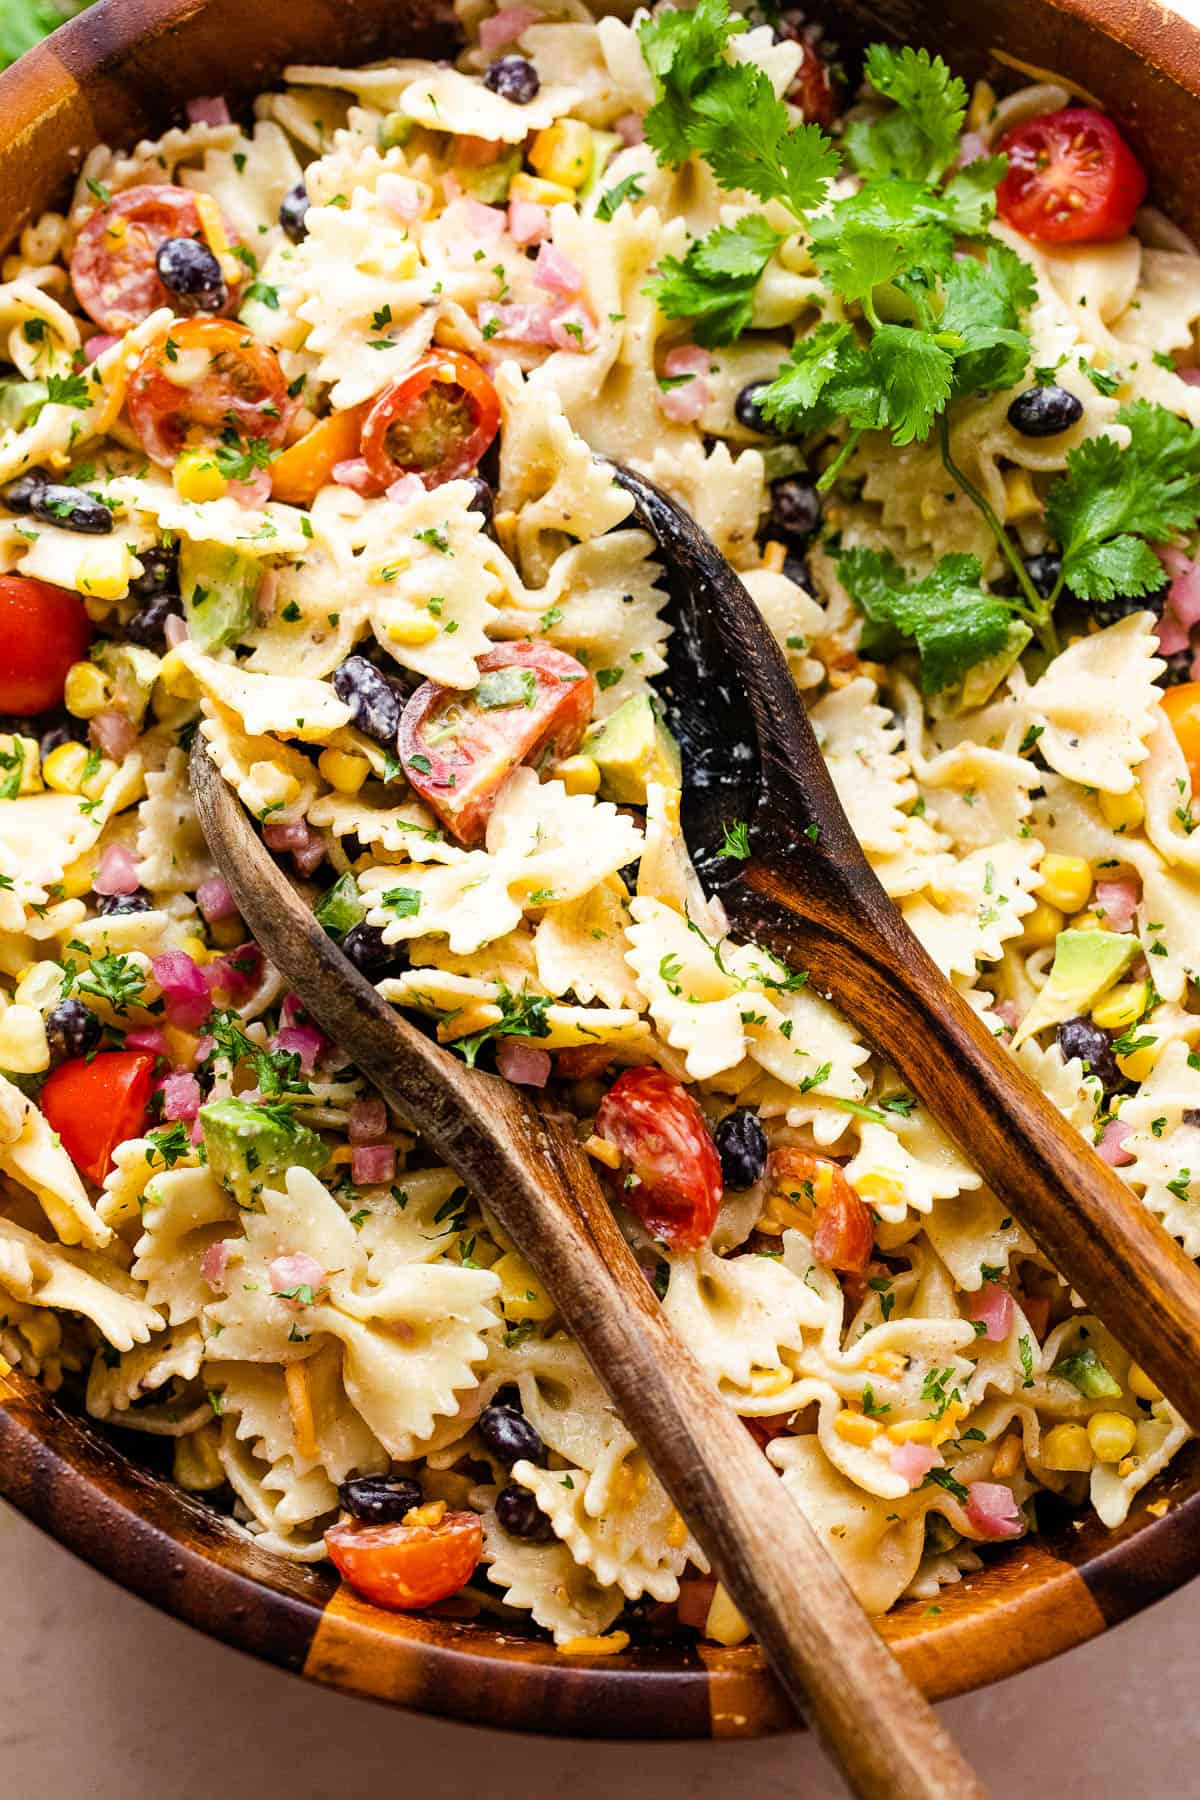 pasta salad in a wooden salad bowl with two wooden spoons